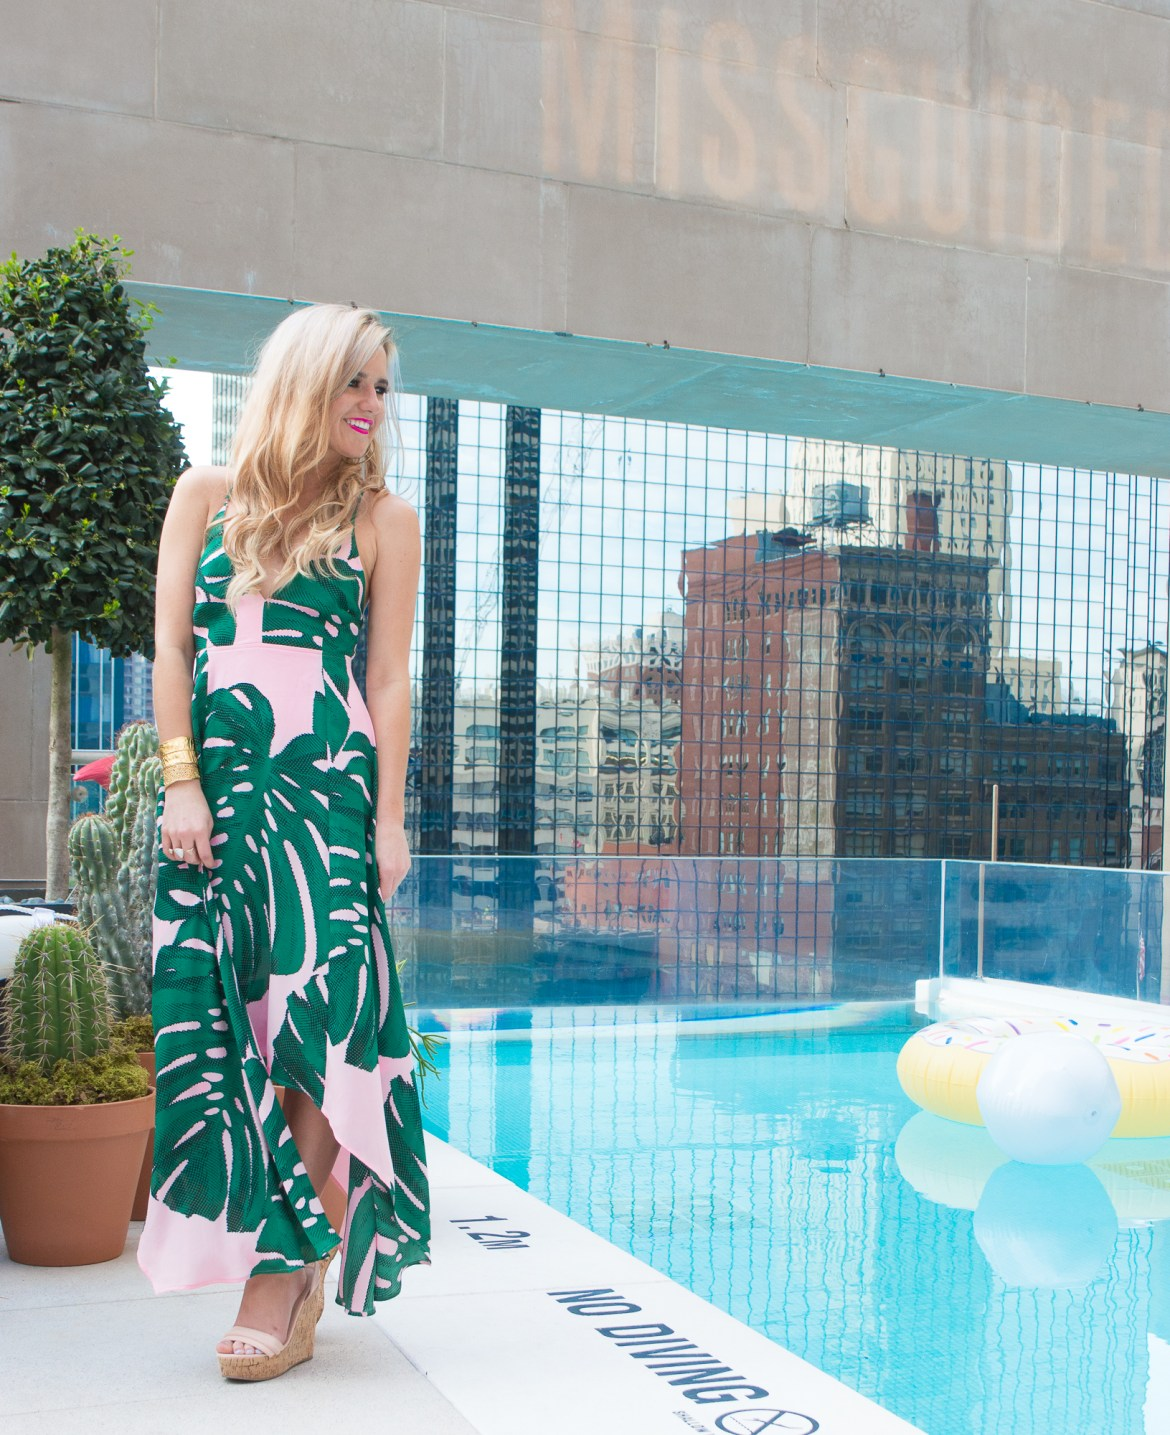 rsthecon: Missguided Rooftop Pool Party + Palm Print Dress • The ...